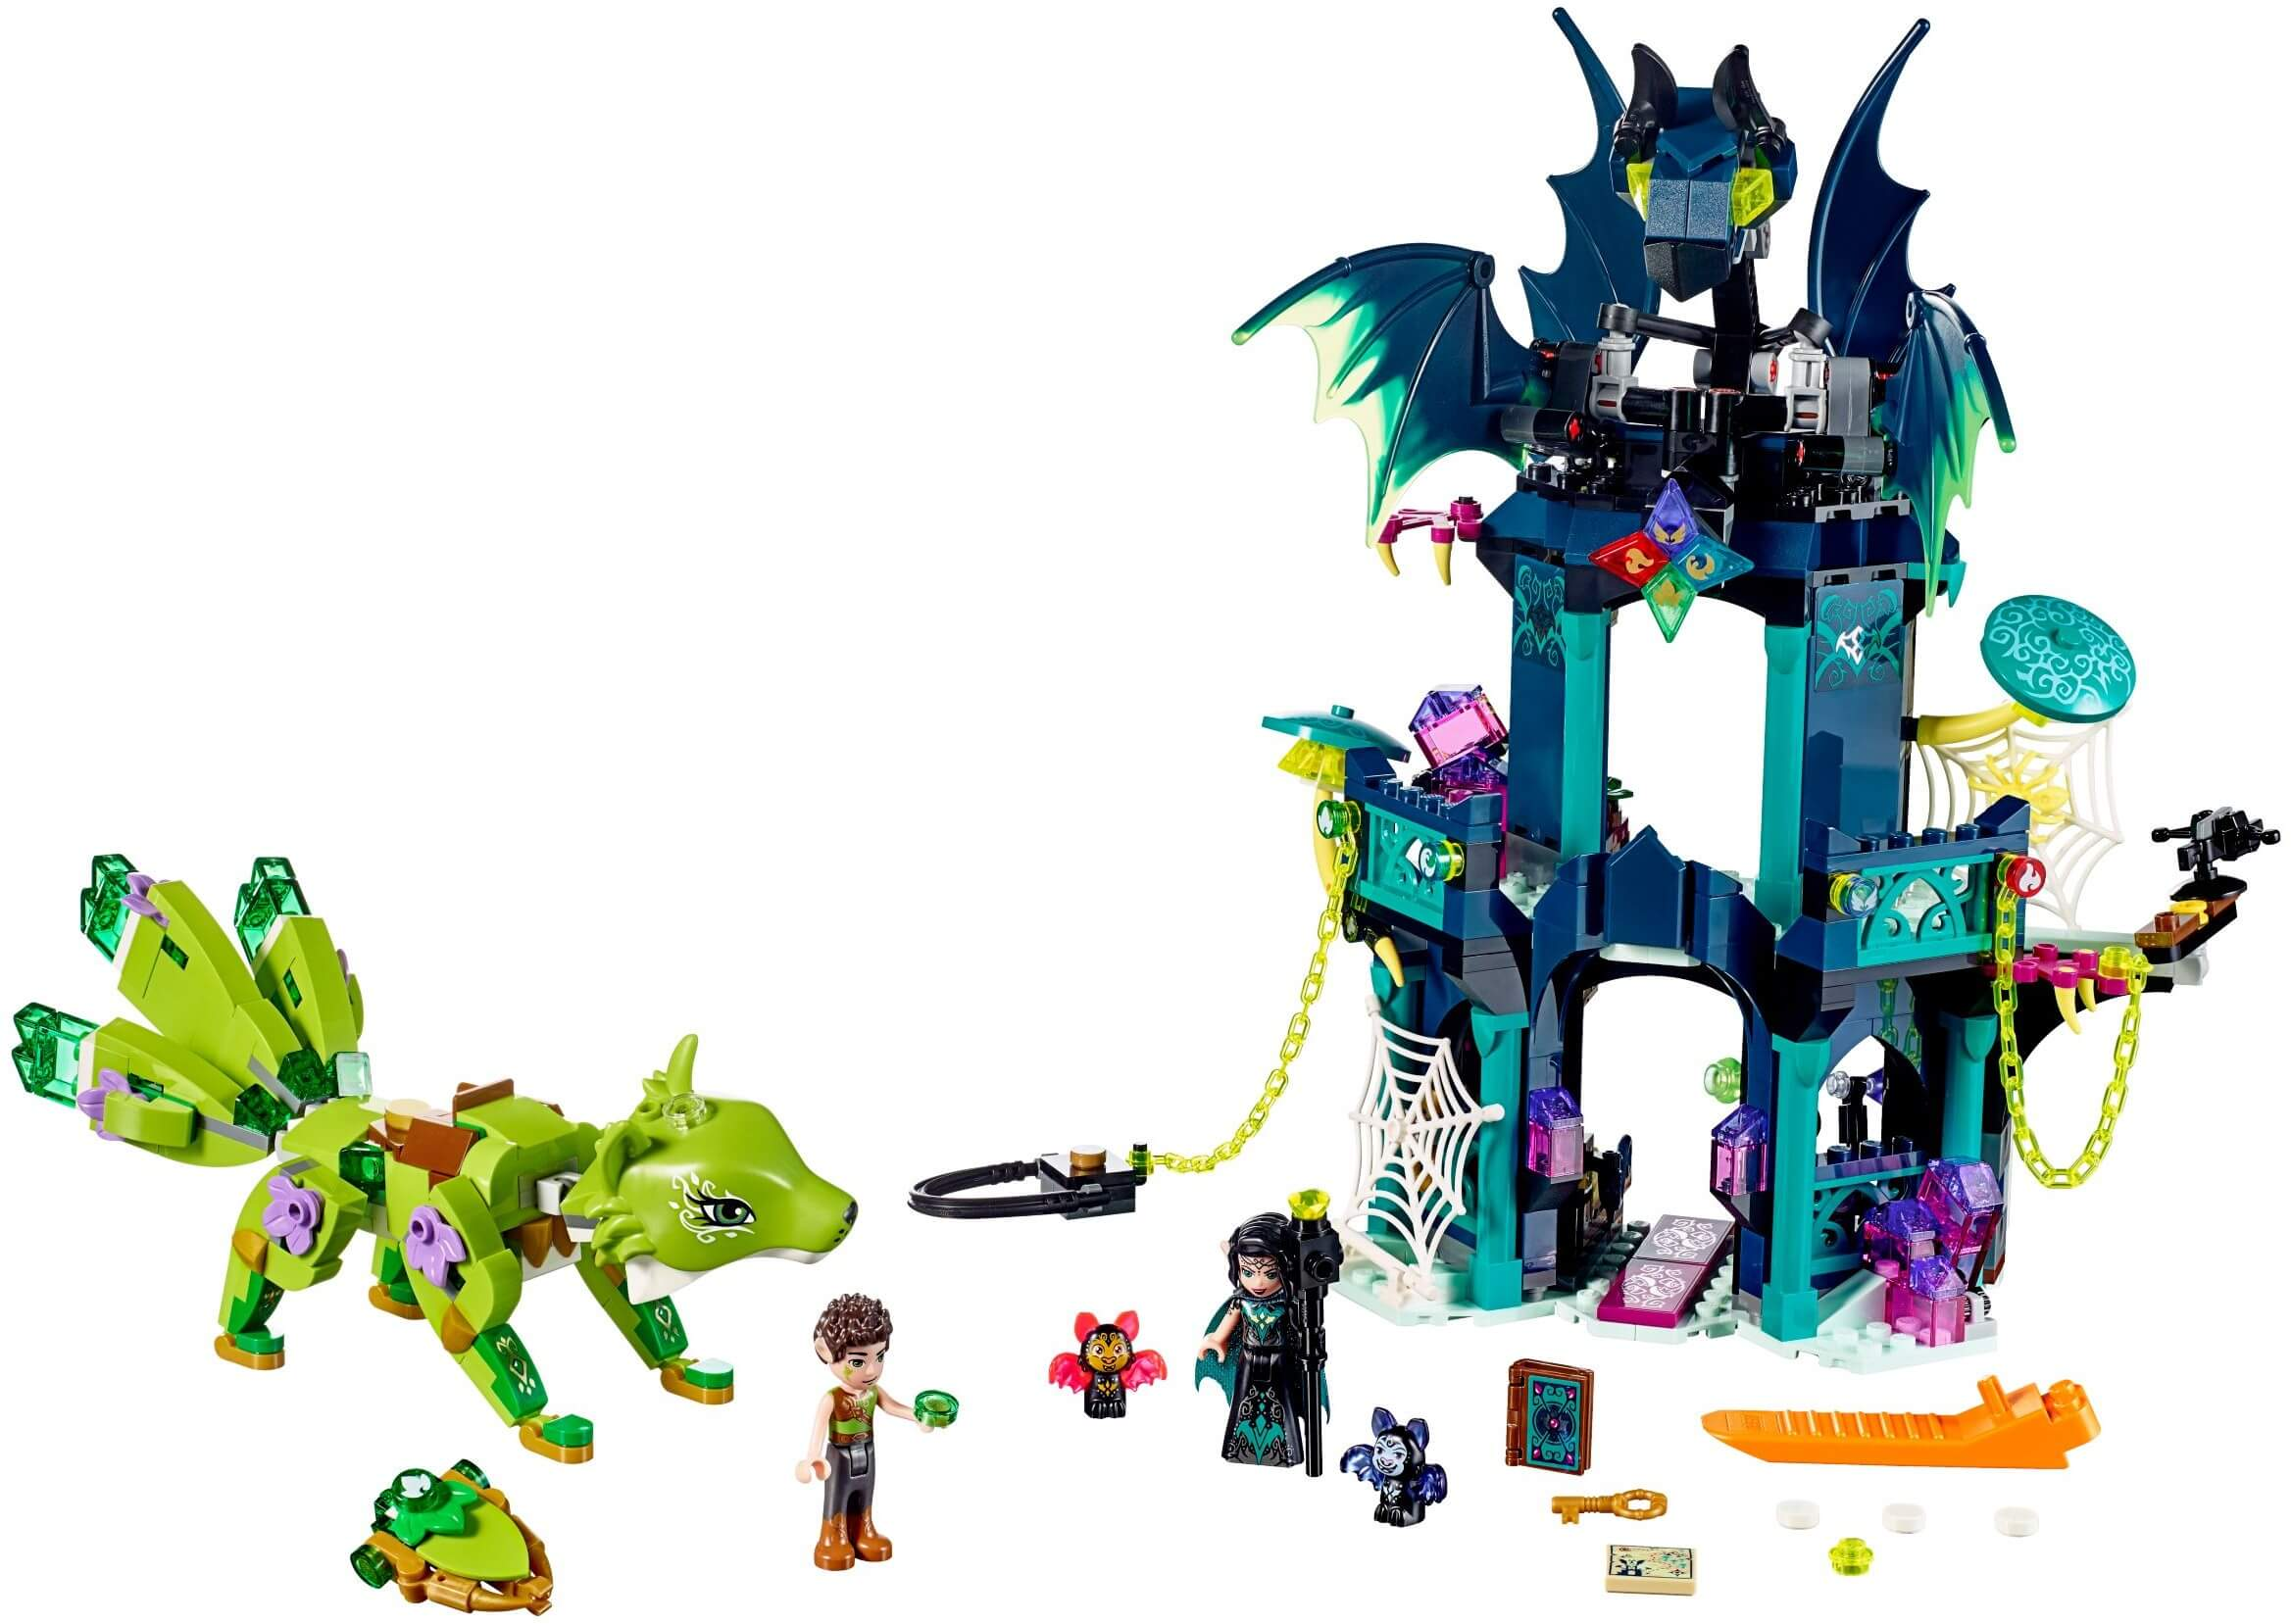 Mua đồ chơi LEGO 41194 - LEGO Elves 41194 - Tòa Tháp Ma Thuật của Noctura (LEGO Elves 41194 Noctura's Tower & the Earth Fox Rescue)